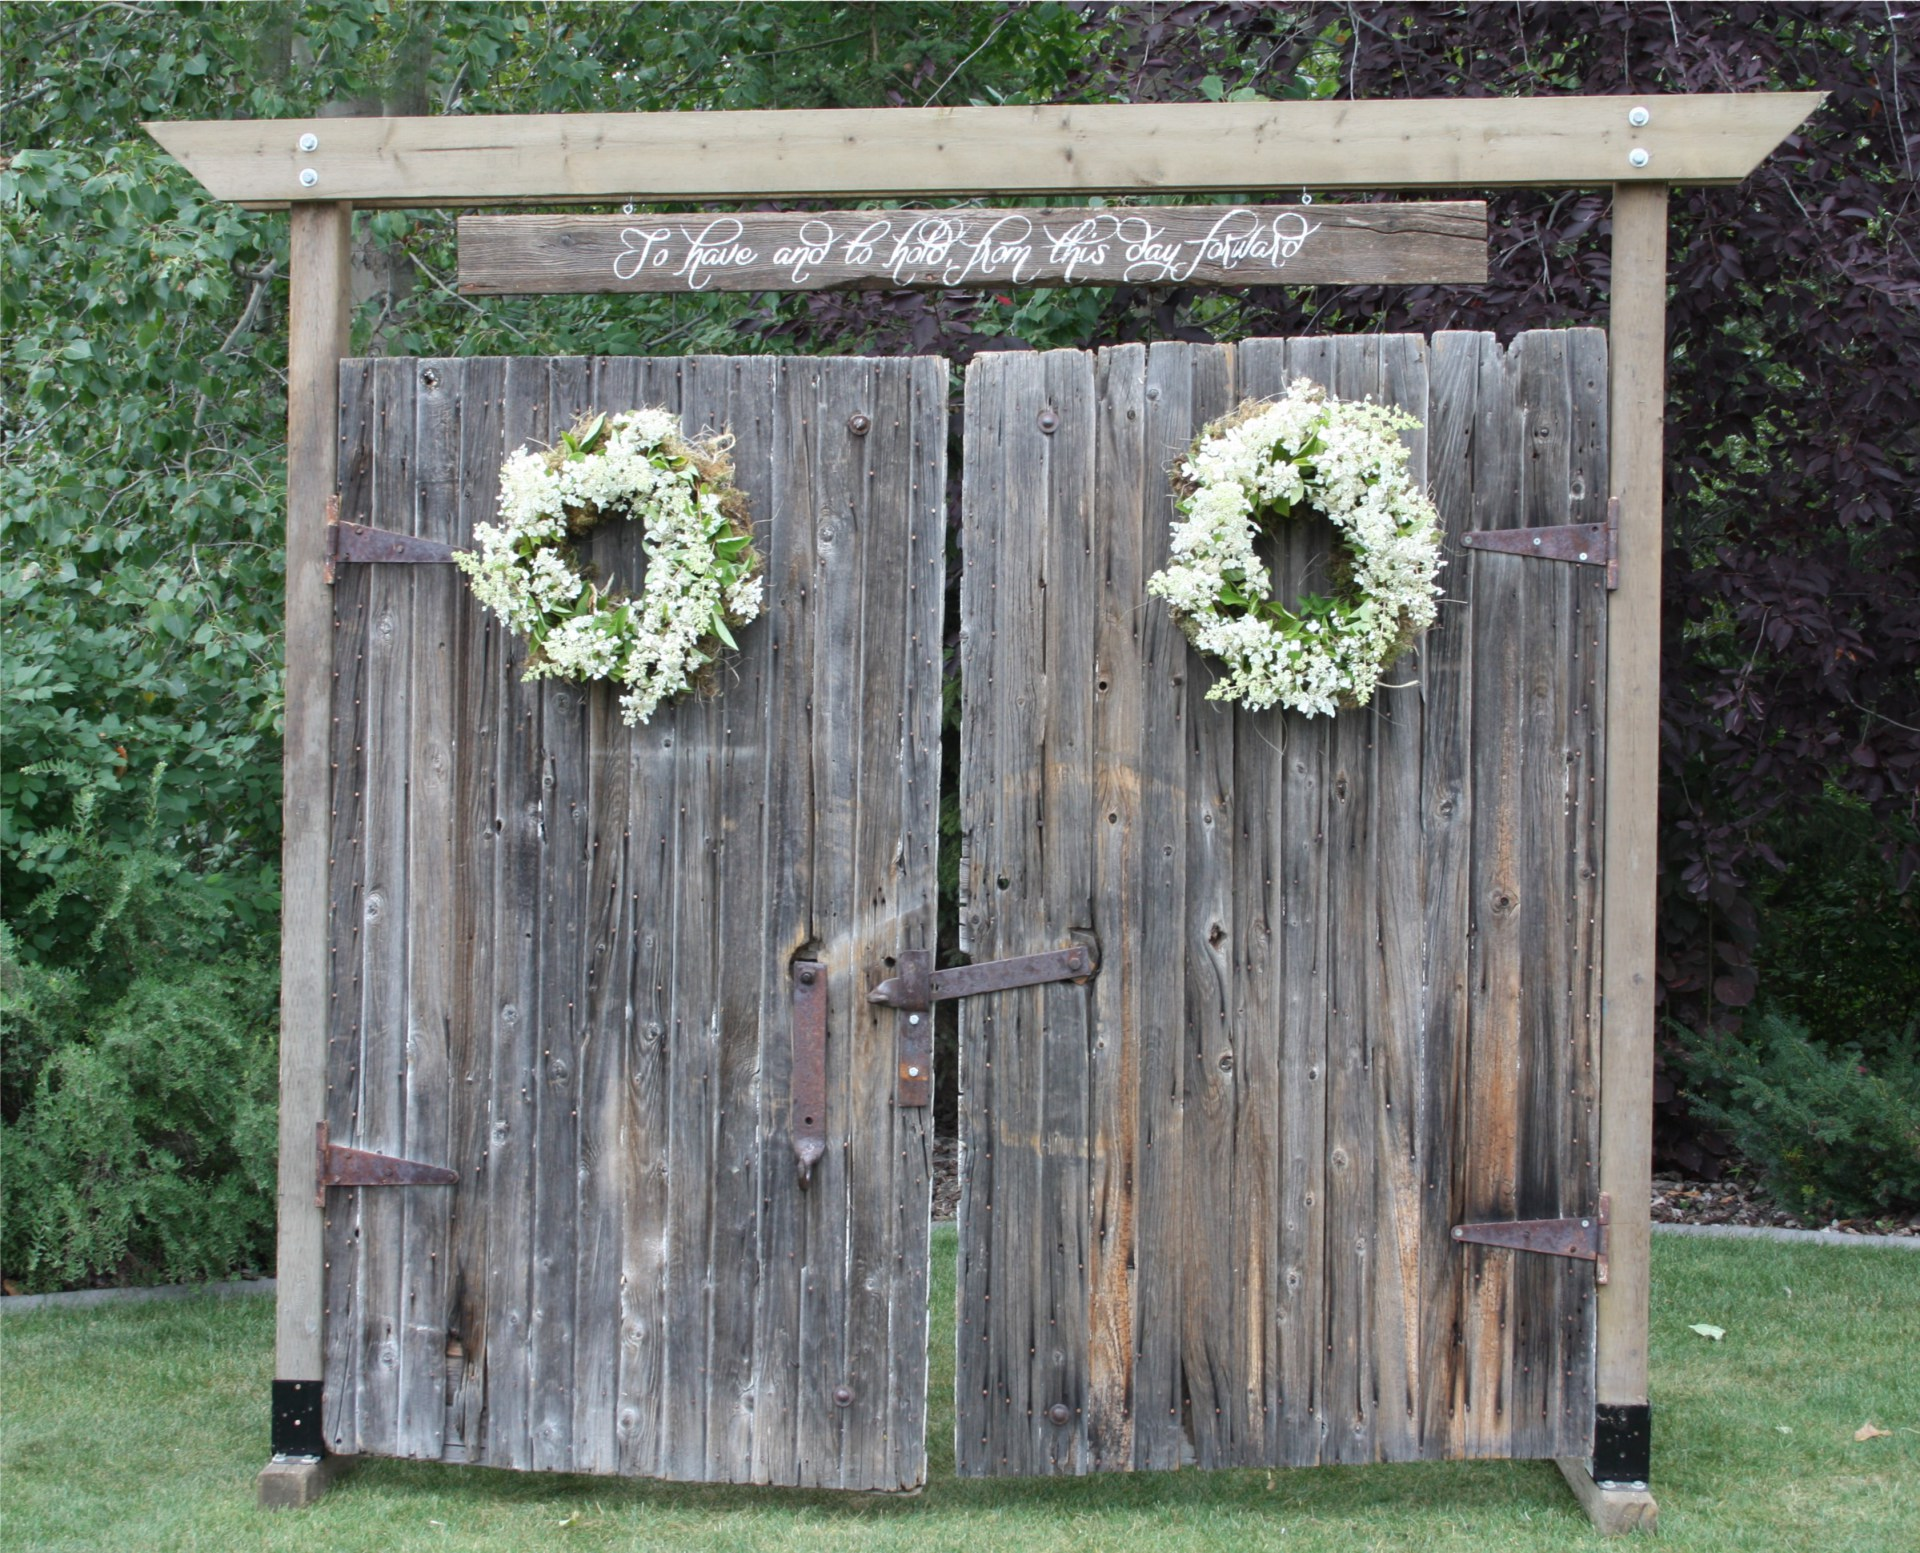 100 year old weathered grey barn doors available for rent as unique backdrop